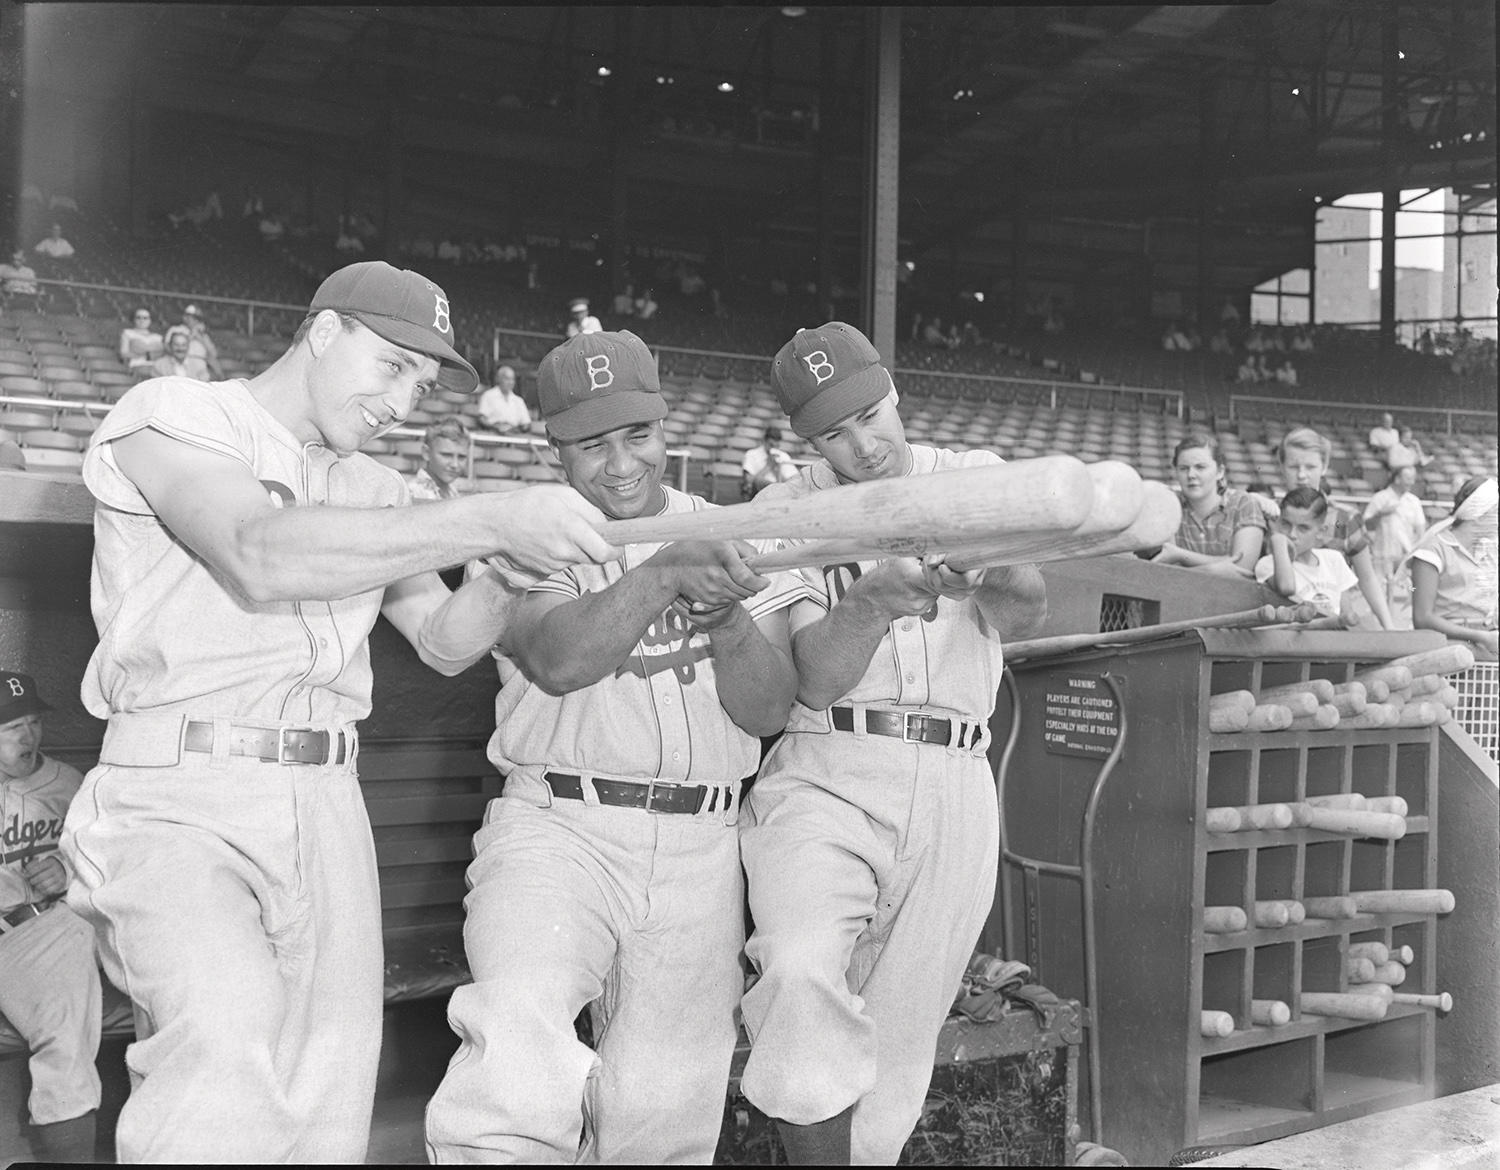 """Gil Hodges (left), Roy Campanella (center), and Duke Snider (right) pose together, holding up their bats as if they were rifles. <a href=""""https://collection.baseballhall.org/islandora/object/islandora%3A627453"""">PASTIME</a> (Osvaldo Salas/National Baseball Hall of Fame and Museum)"""